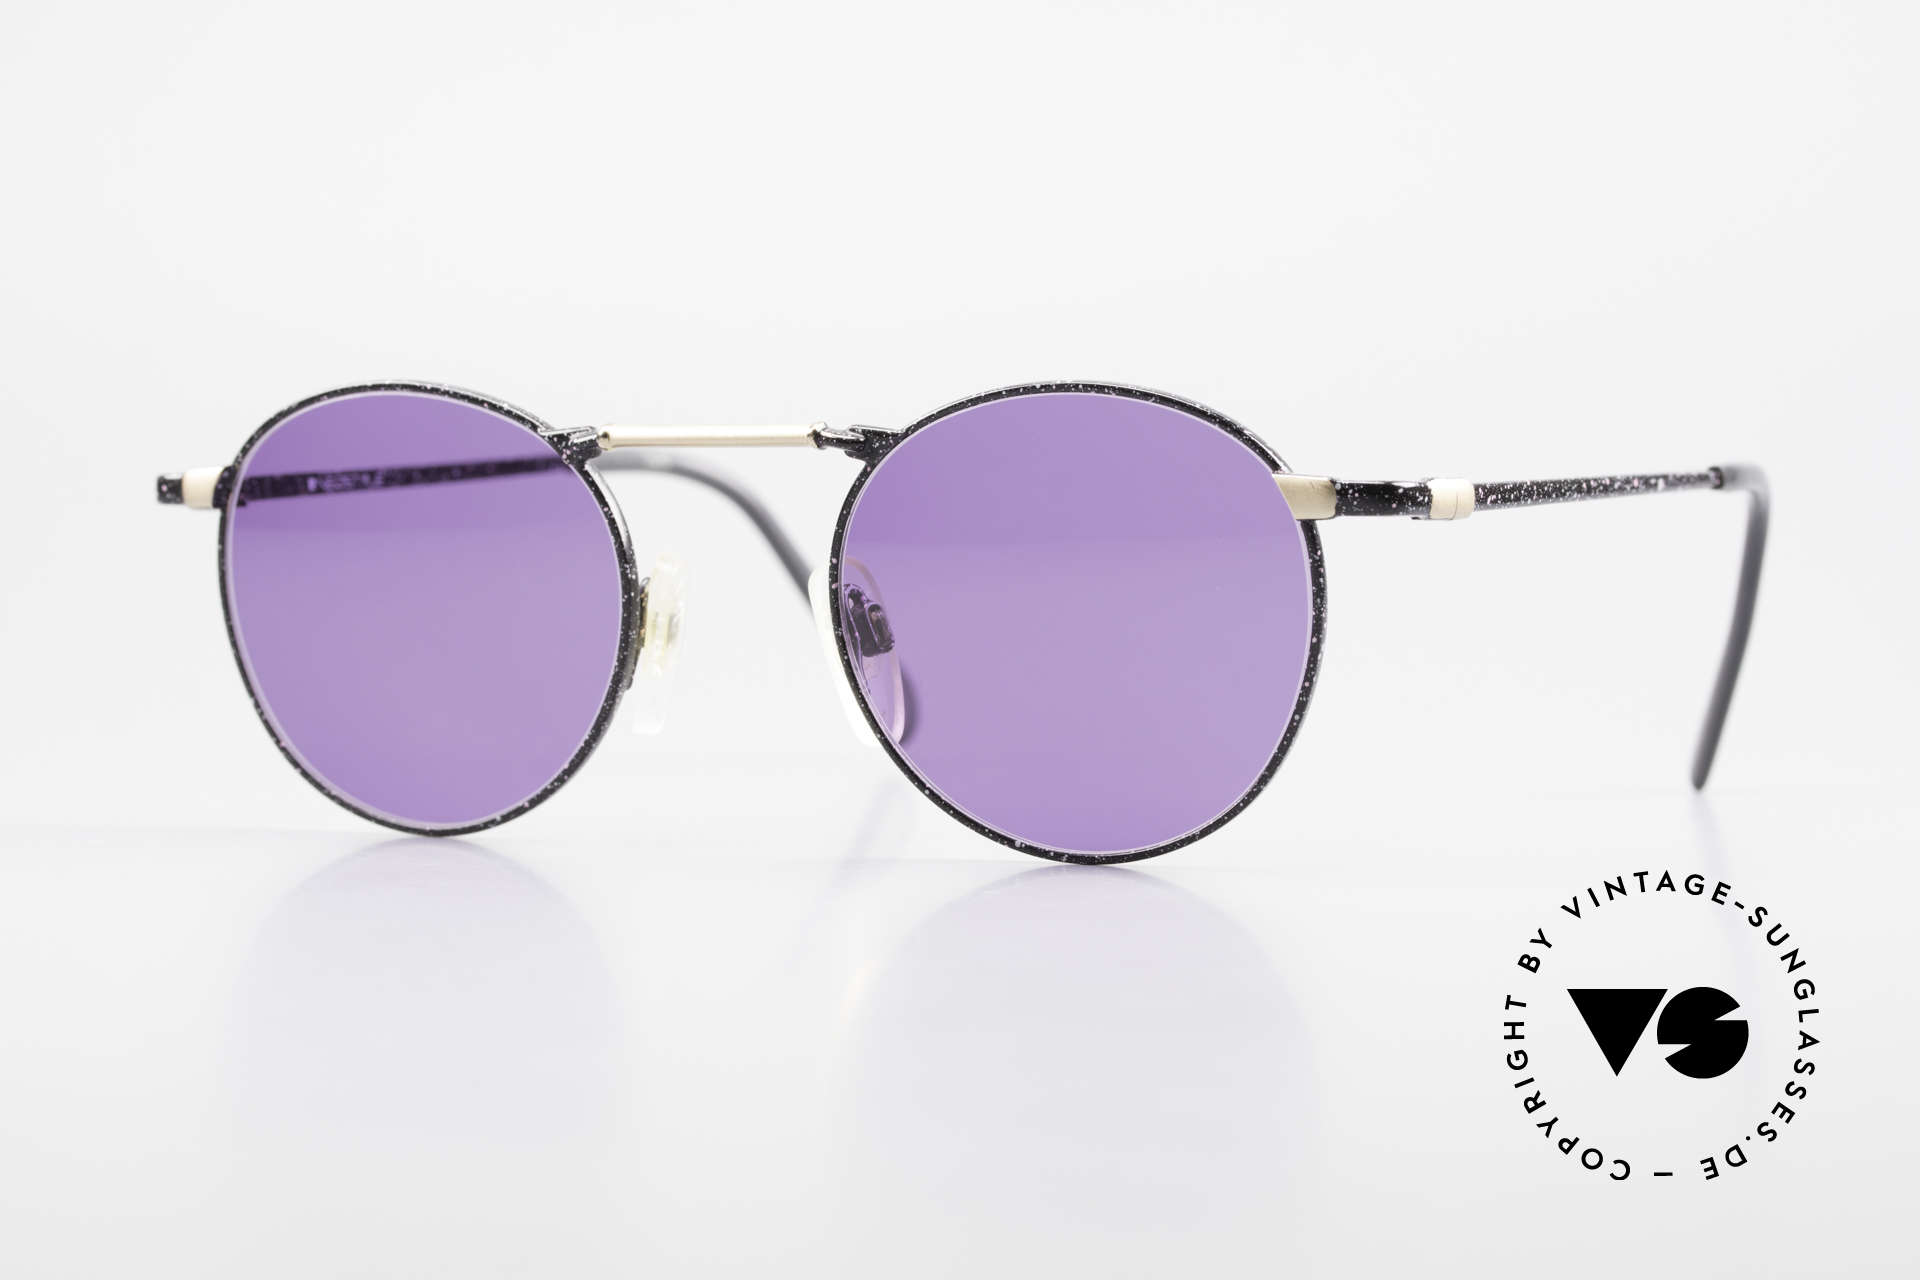 Neostyle Academic 2 80's Purple Panto Sunglasses, Neostlye Academic  2/099 48/22 vintage shades, Made for Men and Women